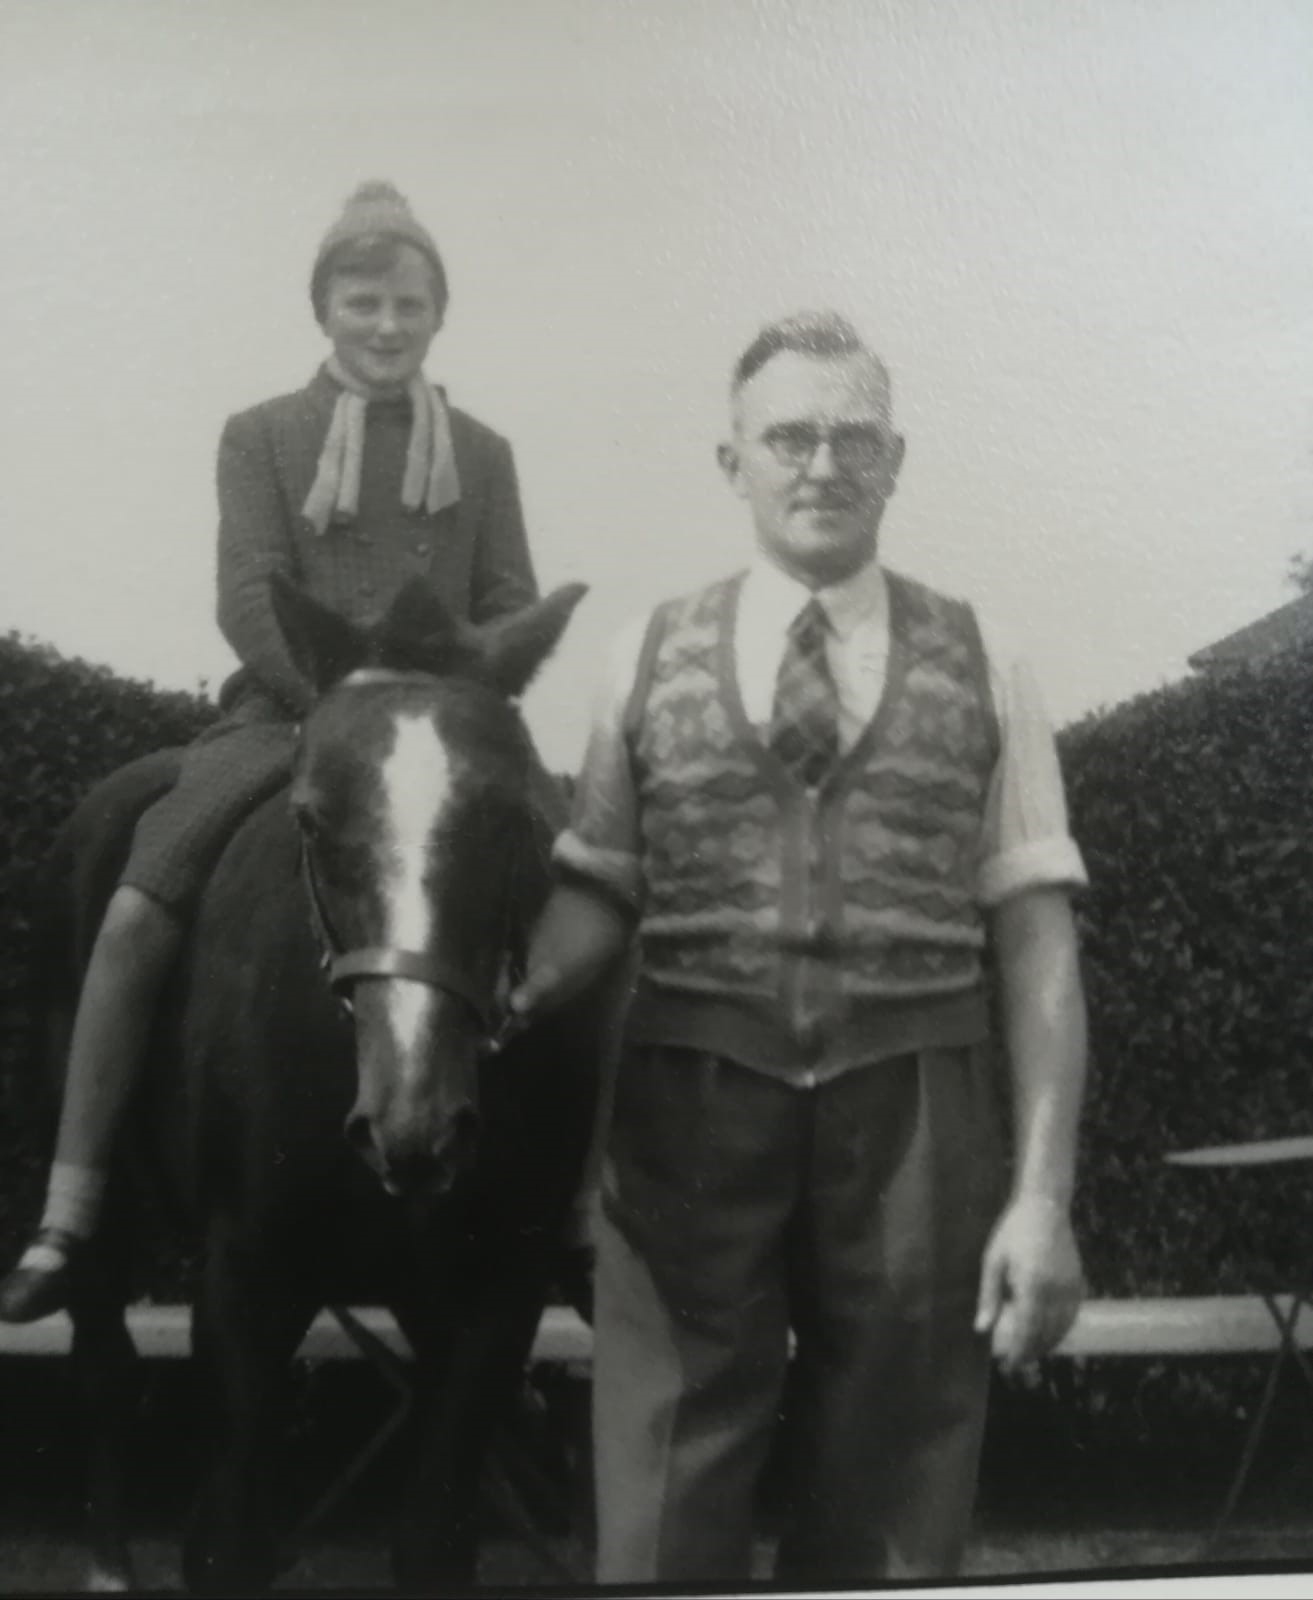 George Flear, the Lincolnshire butcher, and his daughter Frances on horseback in about 1957